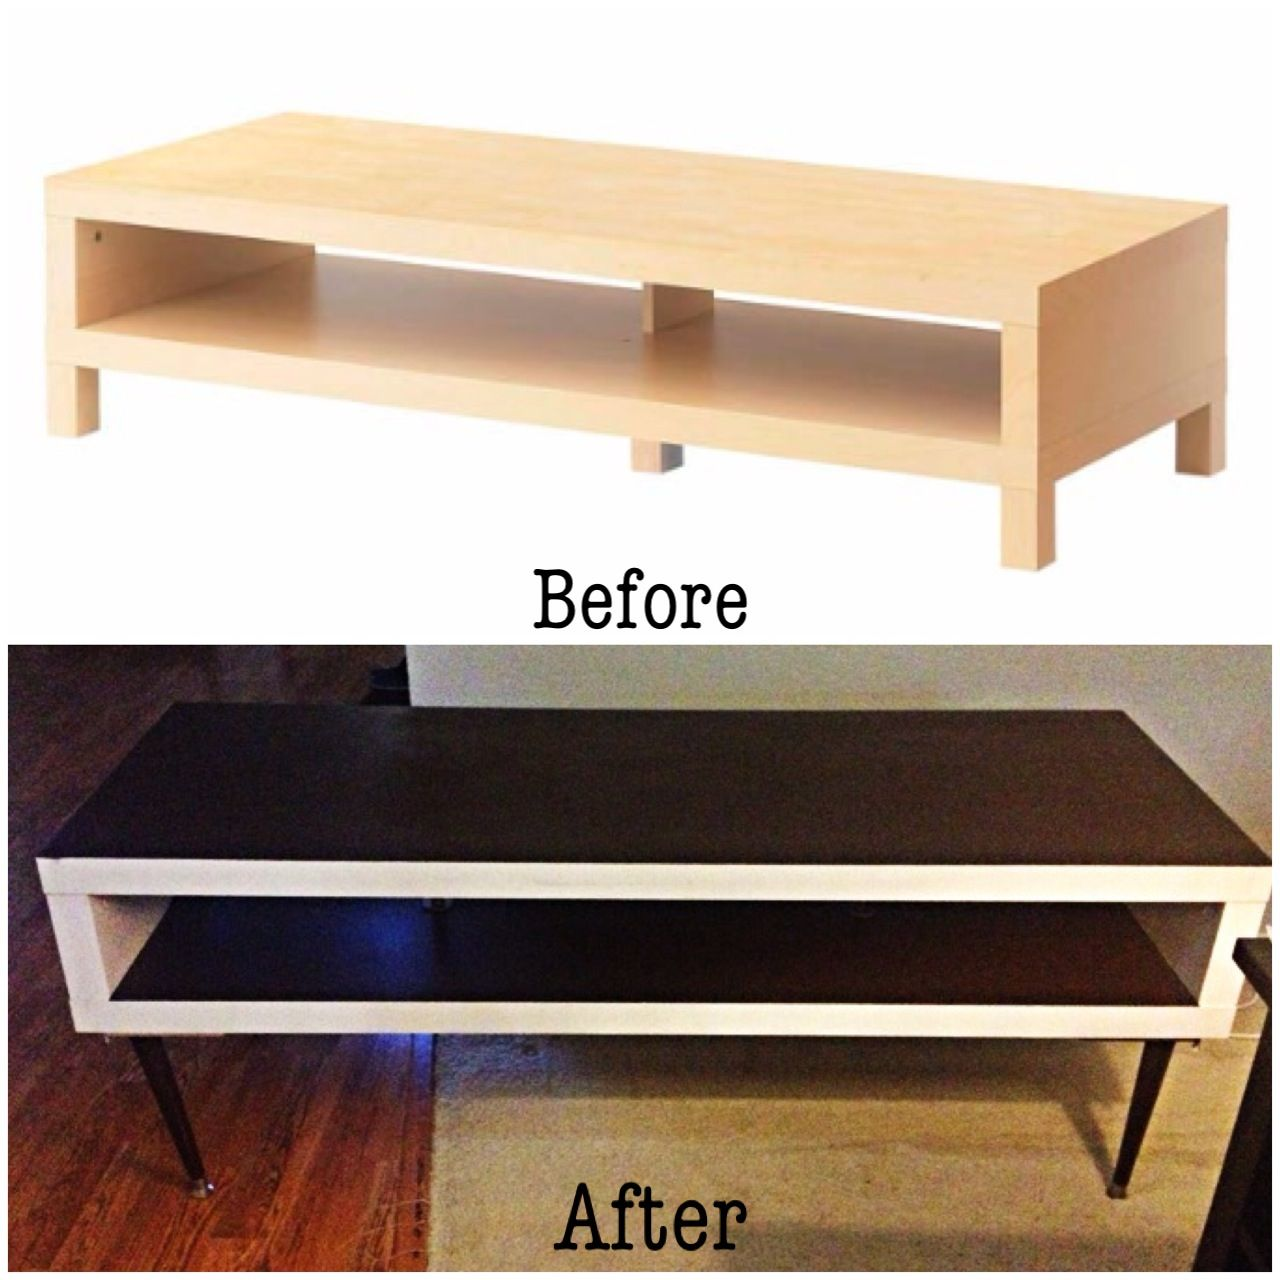 Diy Ikea Hack Lack Tv Stand To Mid Century Inspired Humble Abode